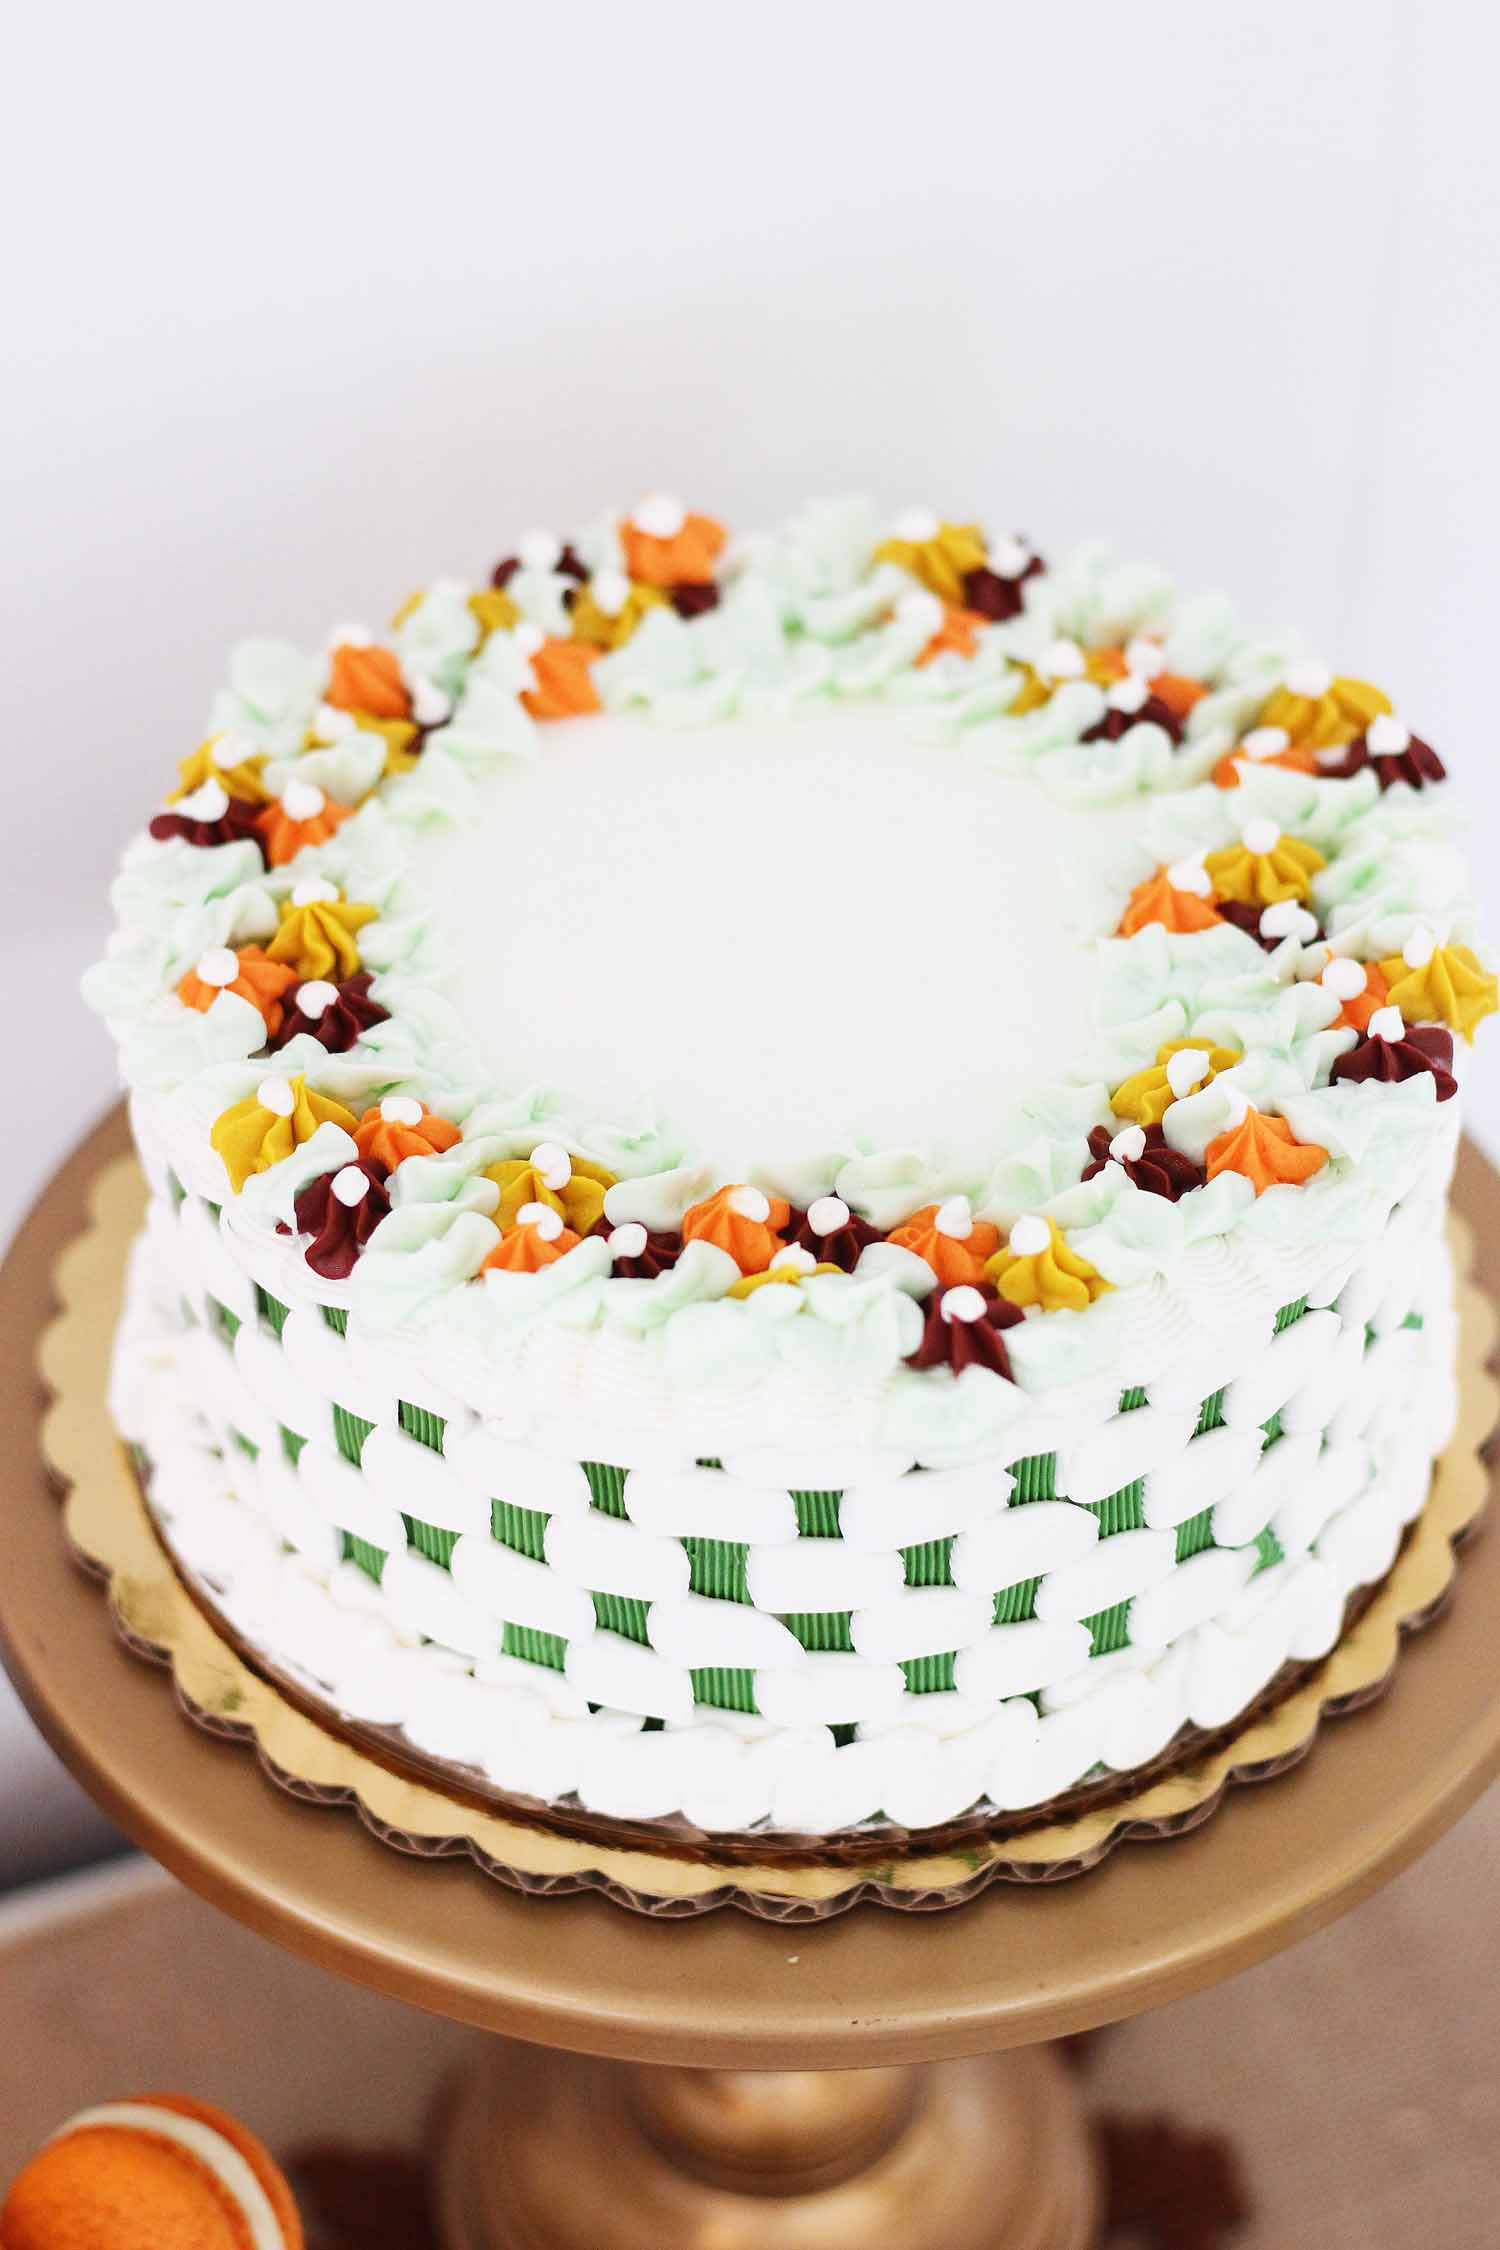 beautiful autumn colors for the jardin cake from cafe pierrot in sussex county morris county nj